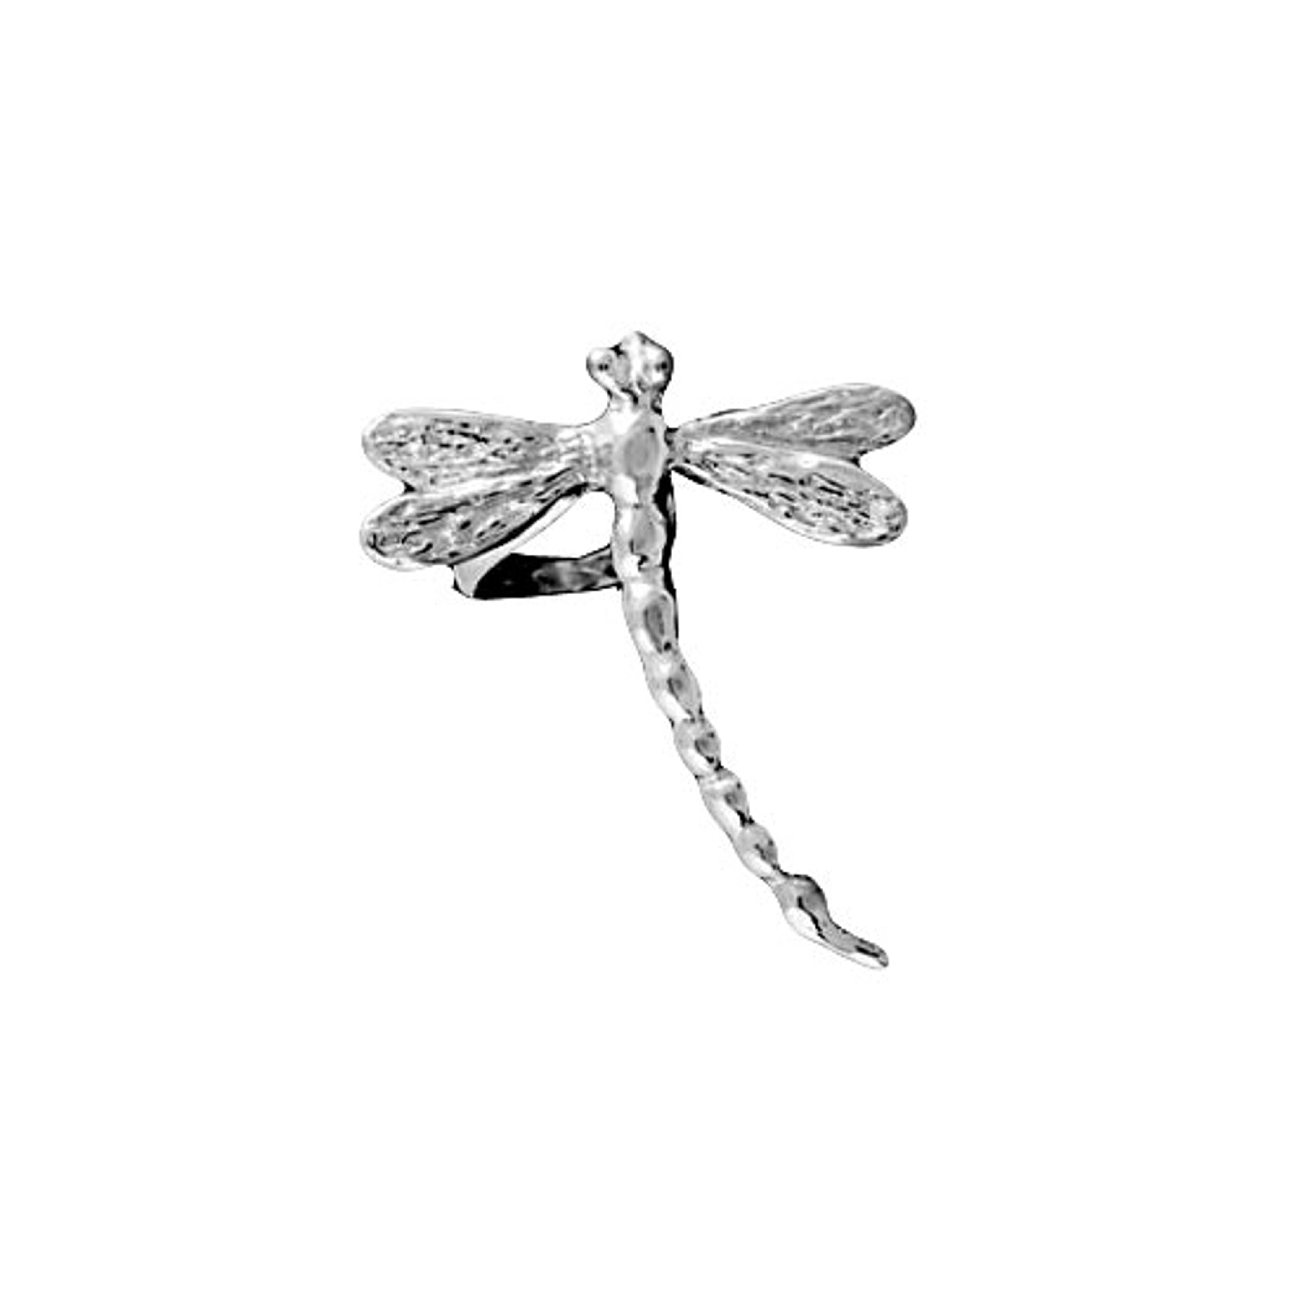 Pierceless Right Only Dragonfly Ear Cuff